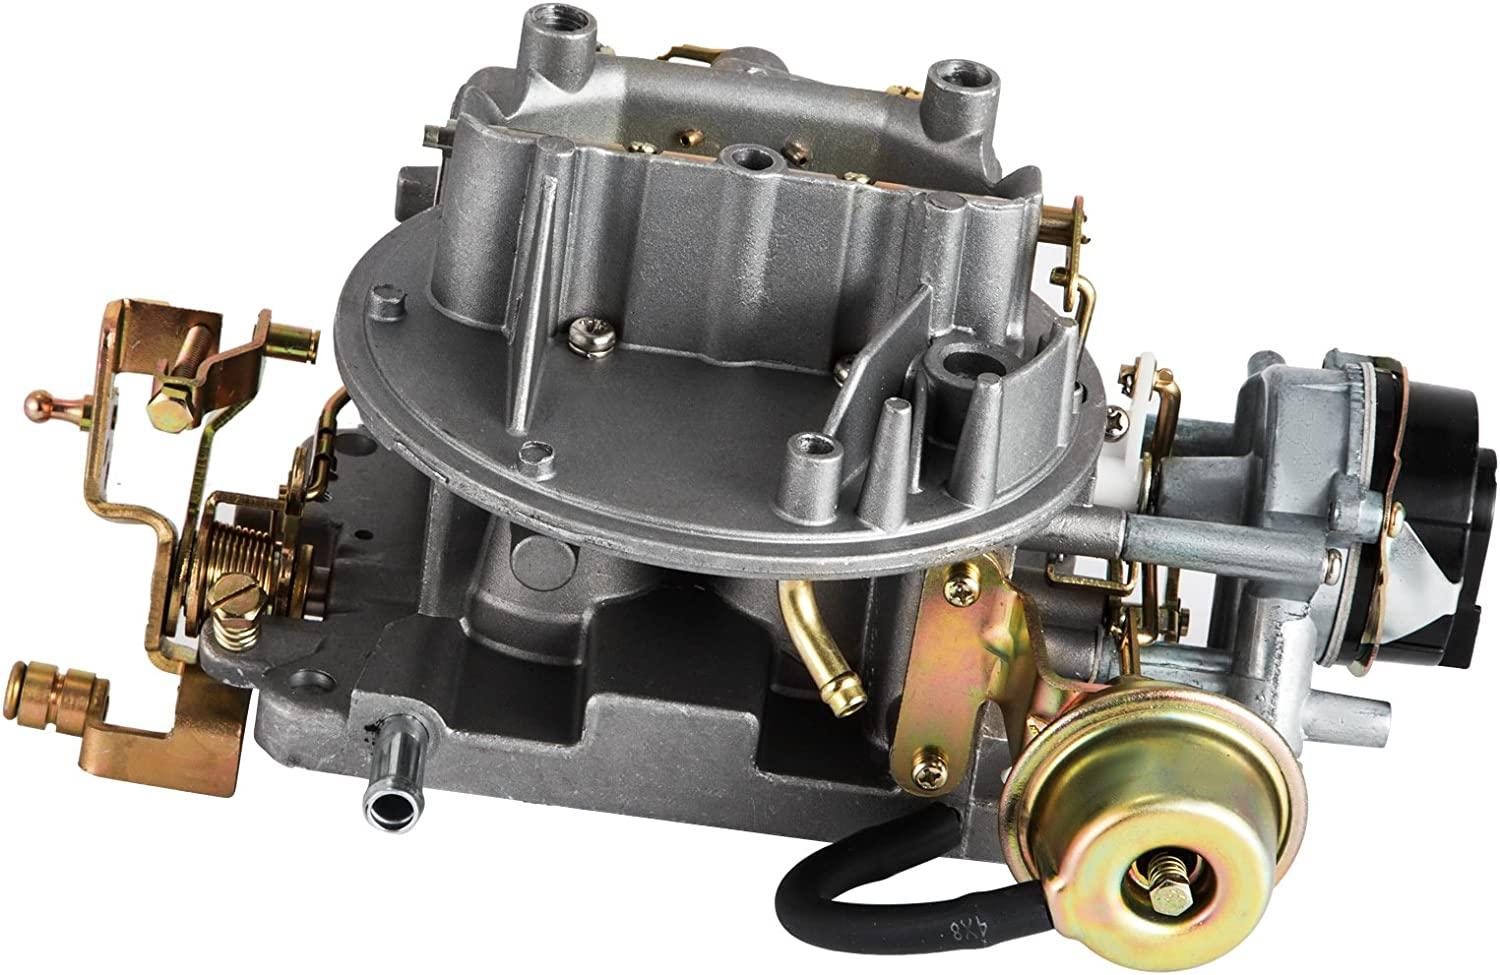 Mophorn Carburetor Heavy Duty 2100 2 Barrel Carburetor for F100 F250 F350 Mustang Engine 289 302 351 for JEEP 360 Carburetor for Ford F100 F250 F350